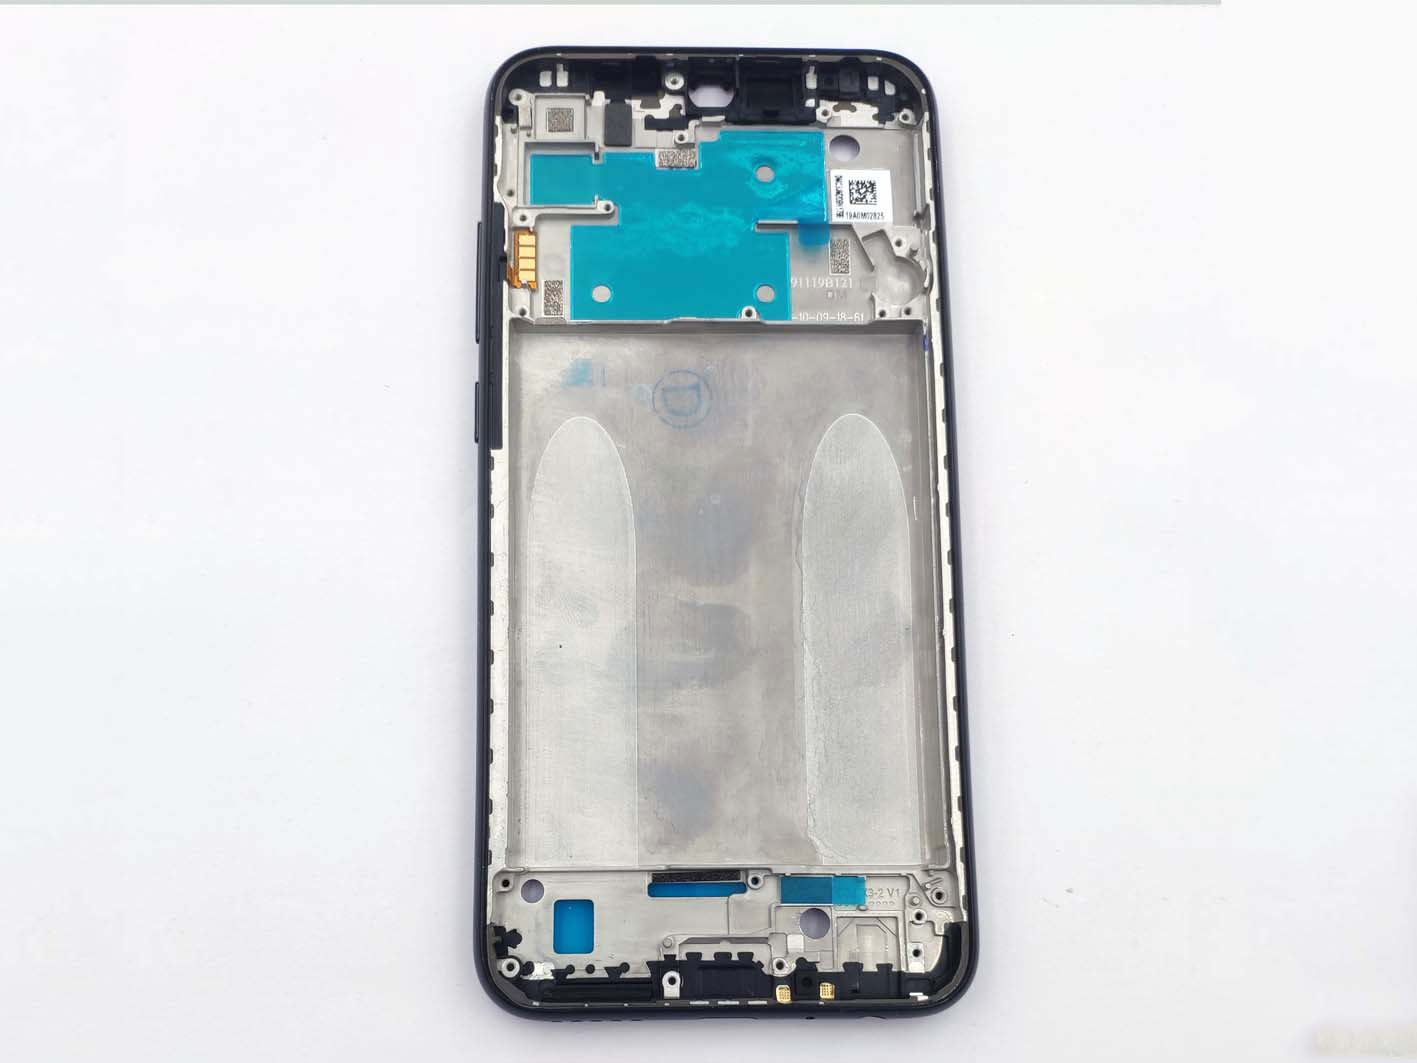 iPad 2 Transmitter Flex Cable